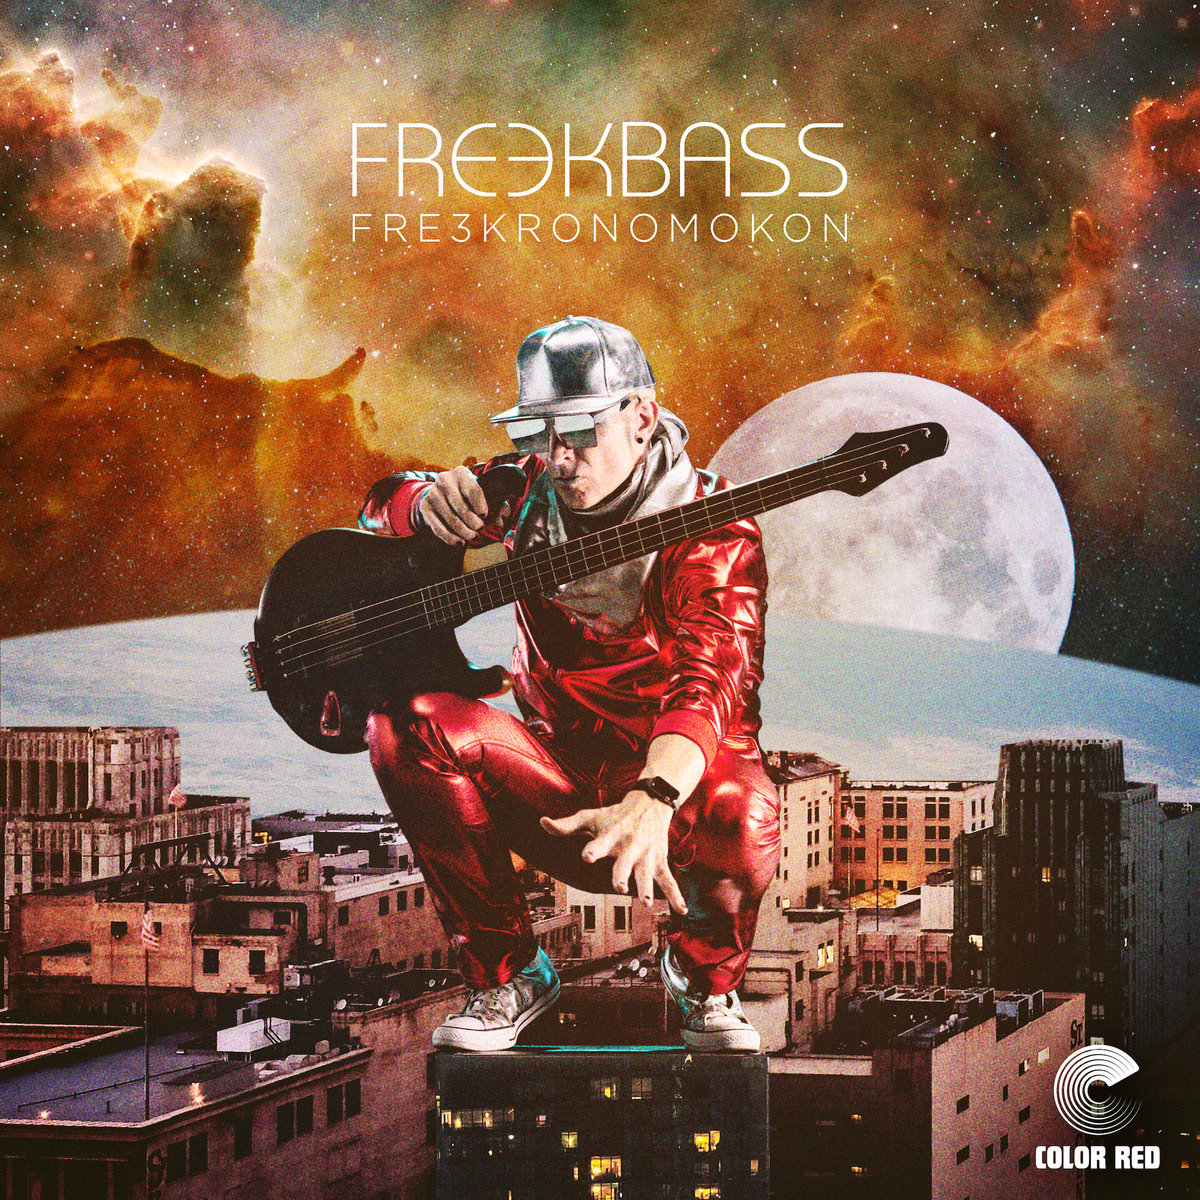 Fre3KroNomoKon by Freekbass